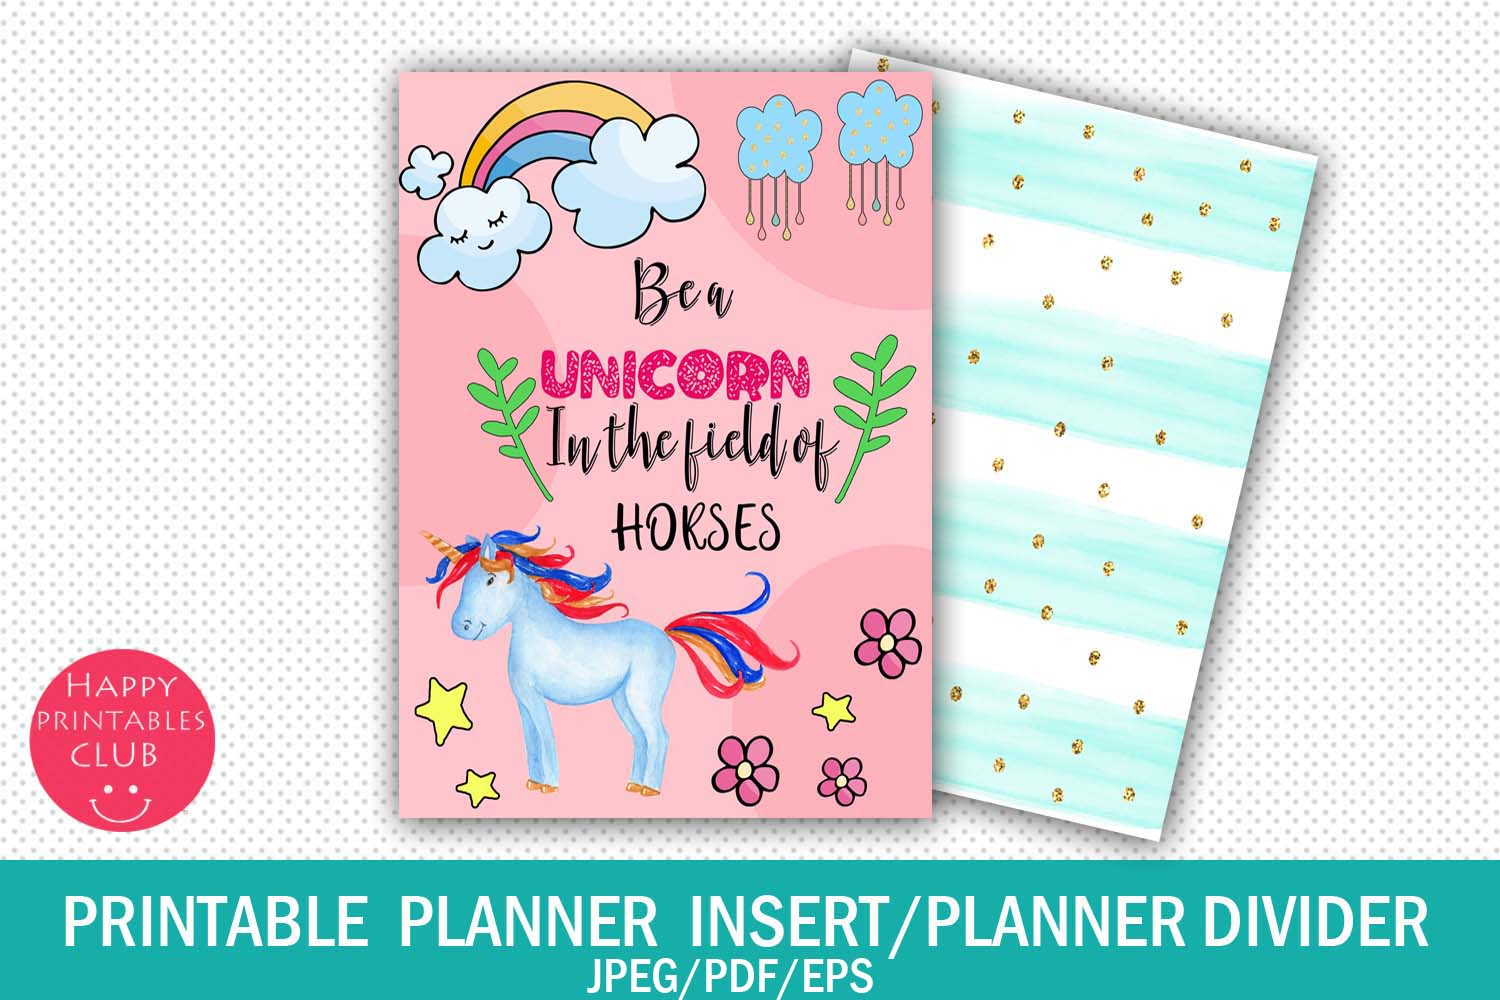 graphic relating to Printable Dividers identified as Printable Planner Incorporate-Planner Divider-Planner Equipment